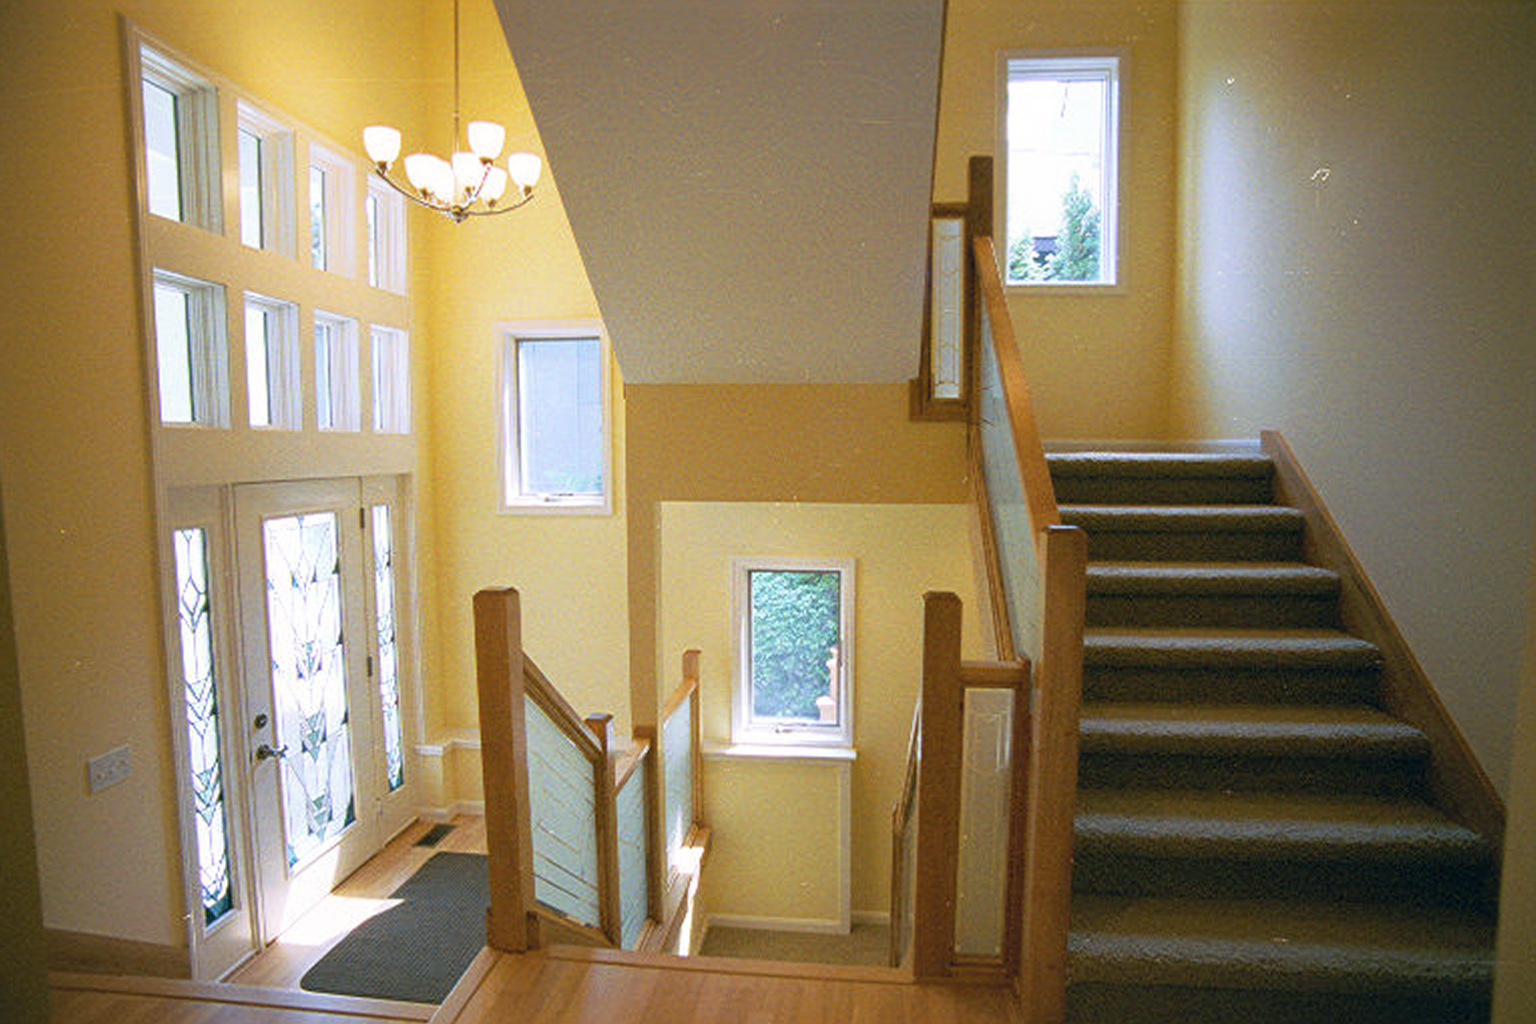 New home and remodeling stairway railings